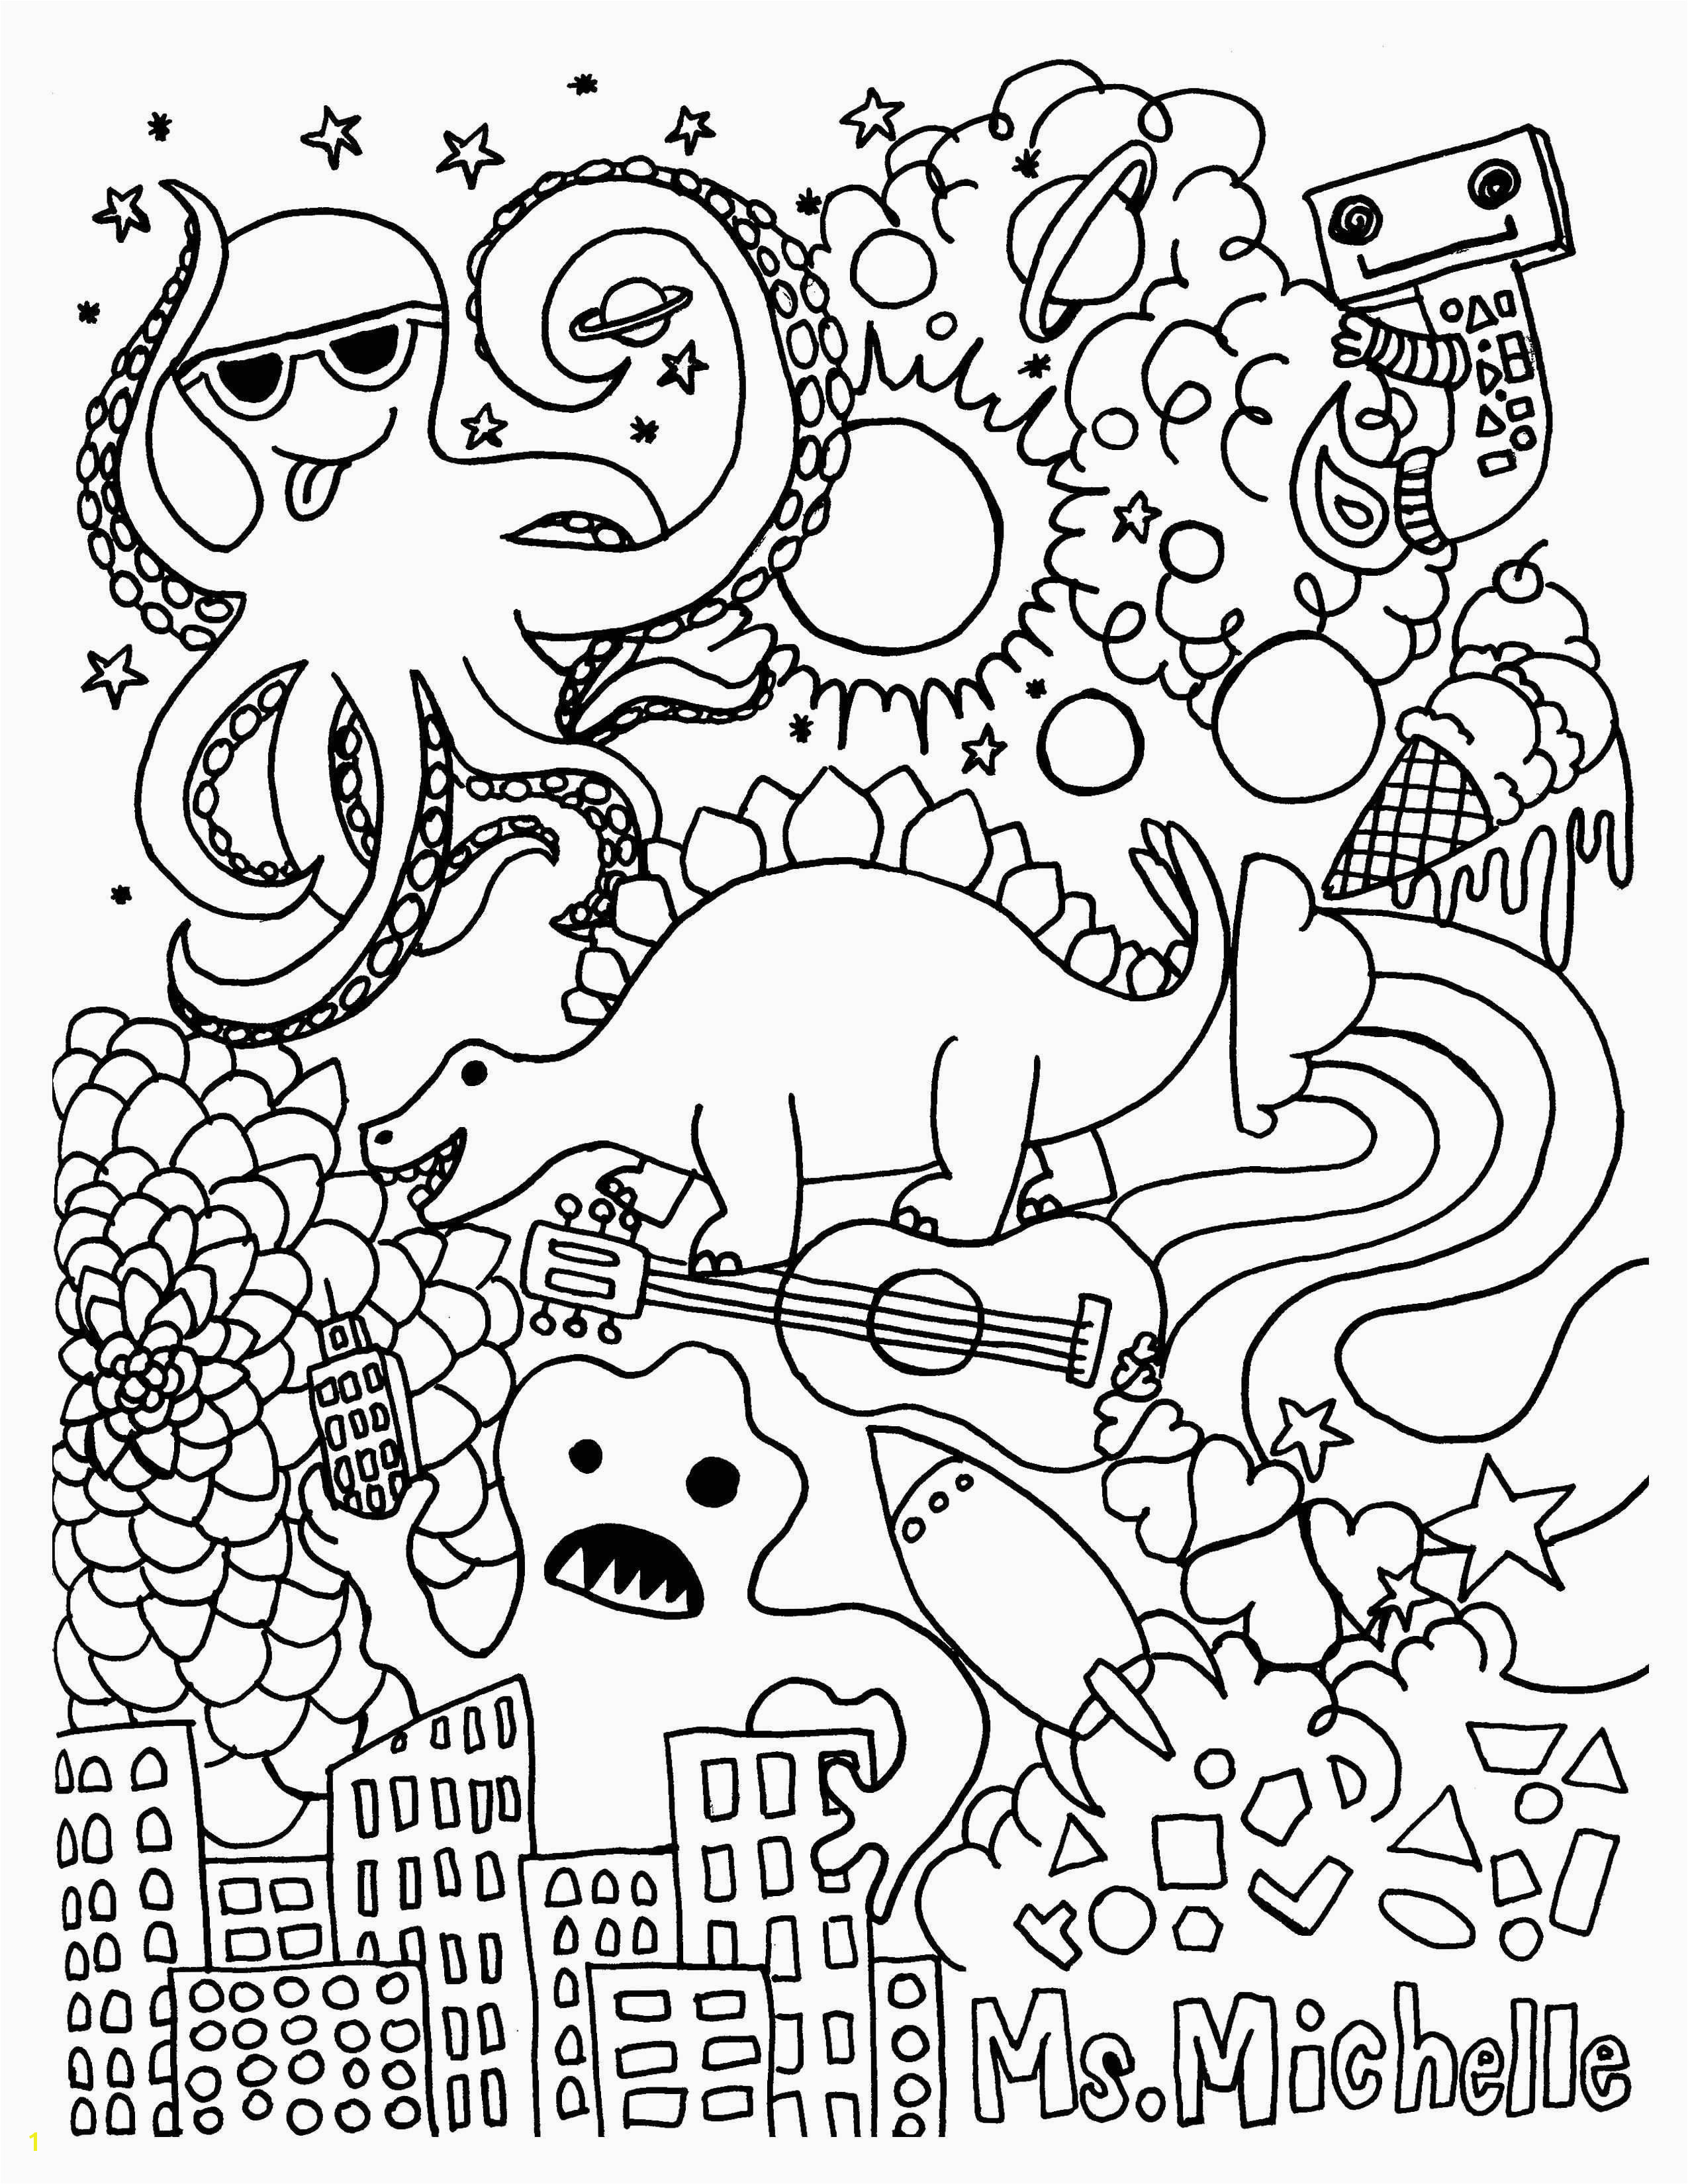 Chicka Chicka Boom Boom Coloring Page Fresh Abc and 123 Coloring Pages Chicka Chicka Boom